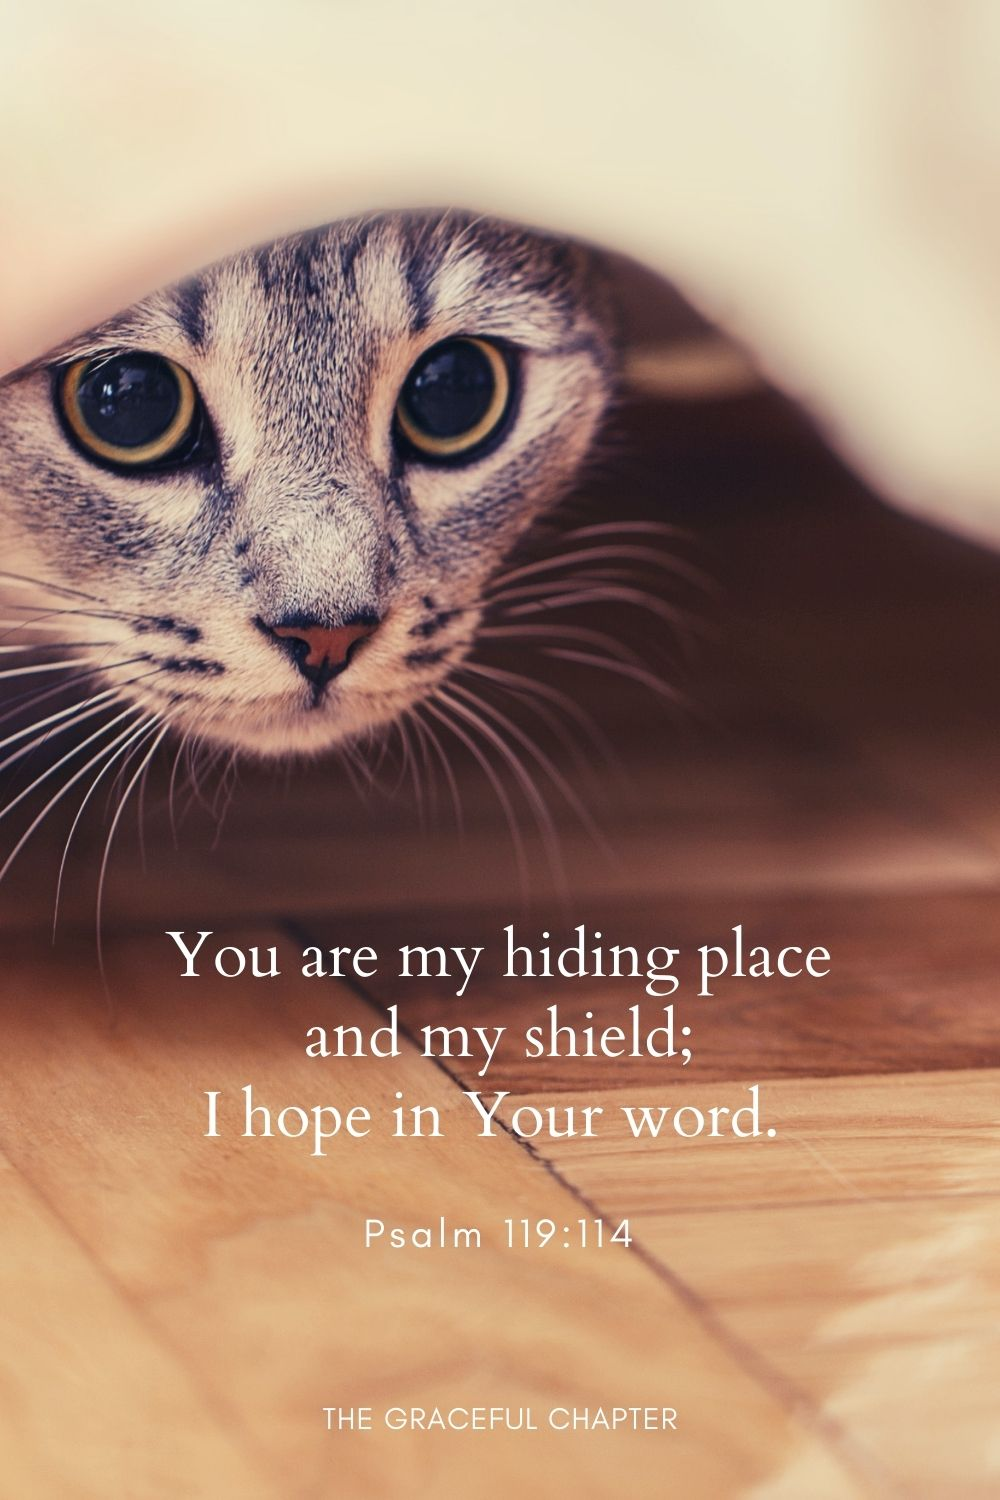 You are my hiding place and my shield; I hope in Your word.Psalm 119:114